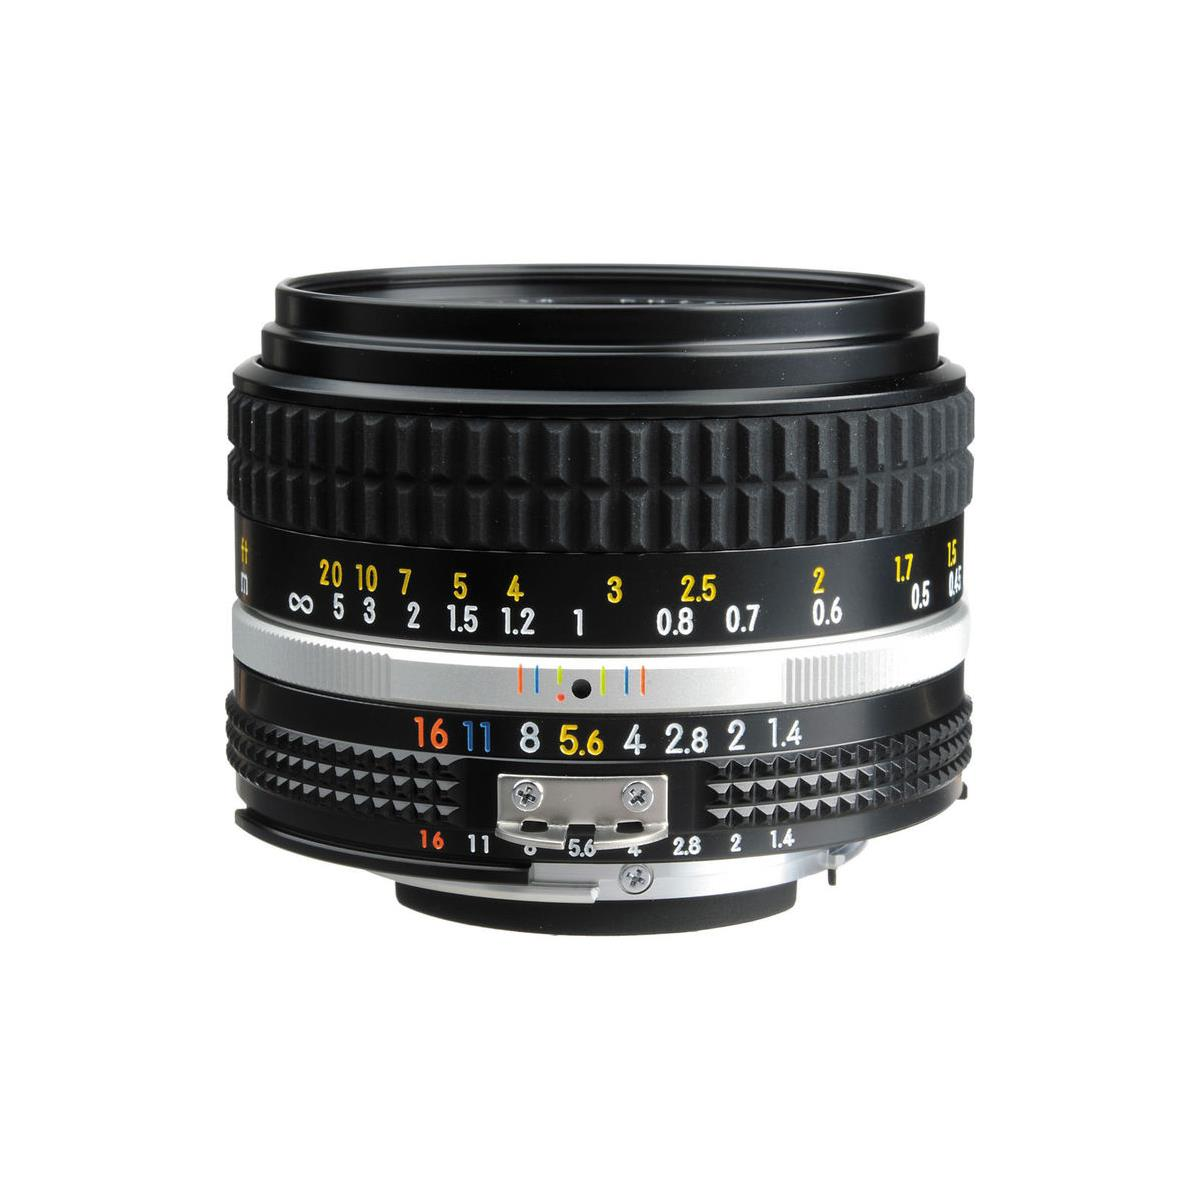 Nikon 50mm f/1.4 best lens for event photography  sc 1 st  Adorama & Best Lenses for Event Photography - ALC